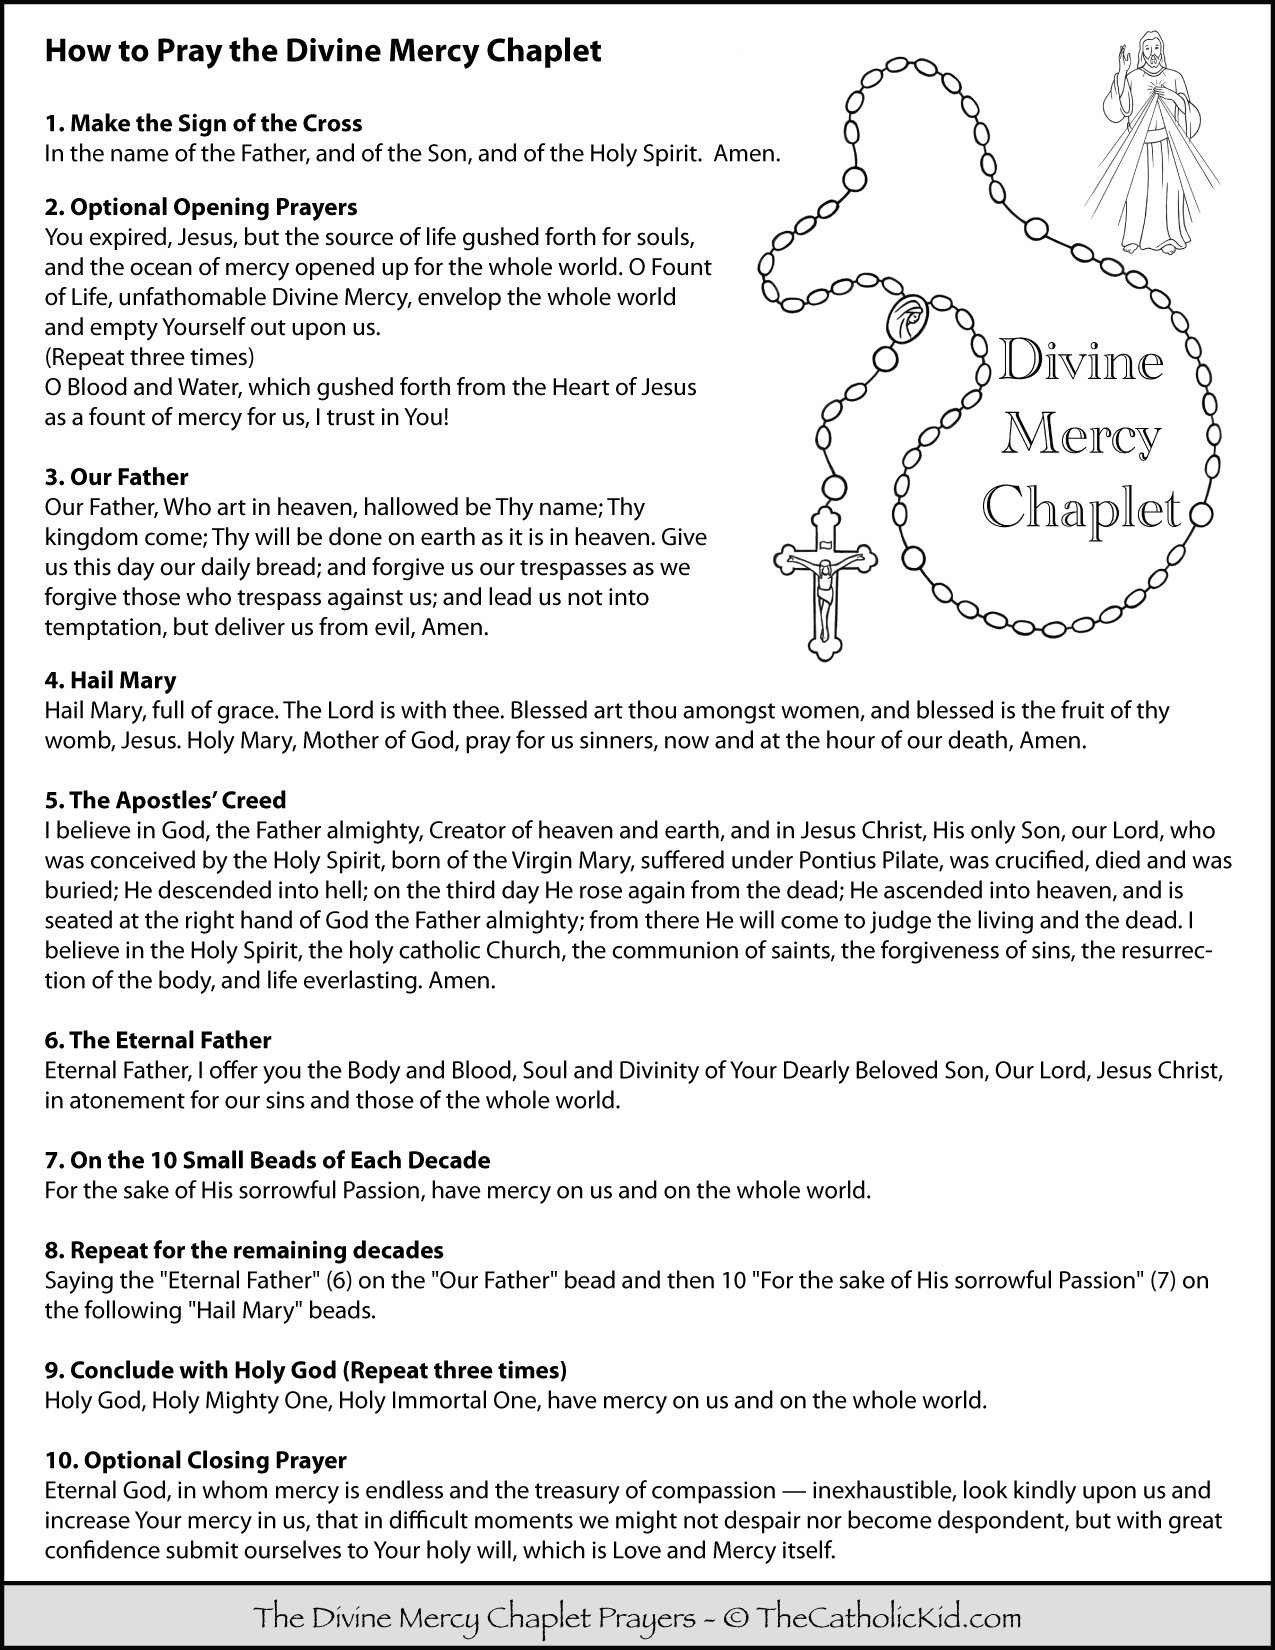 How to Pray the Divine Mercy Chaplet - Prayers for Kids